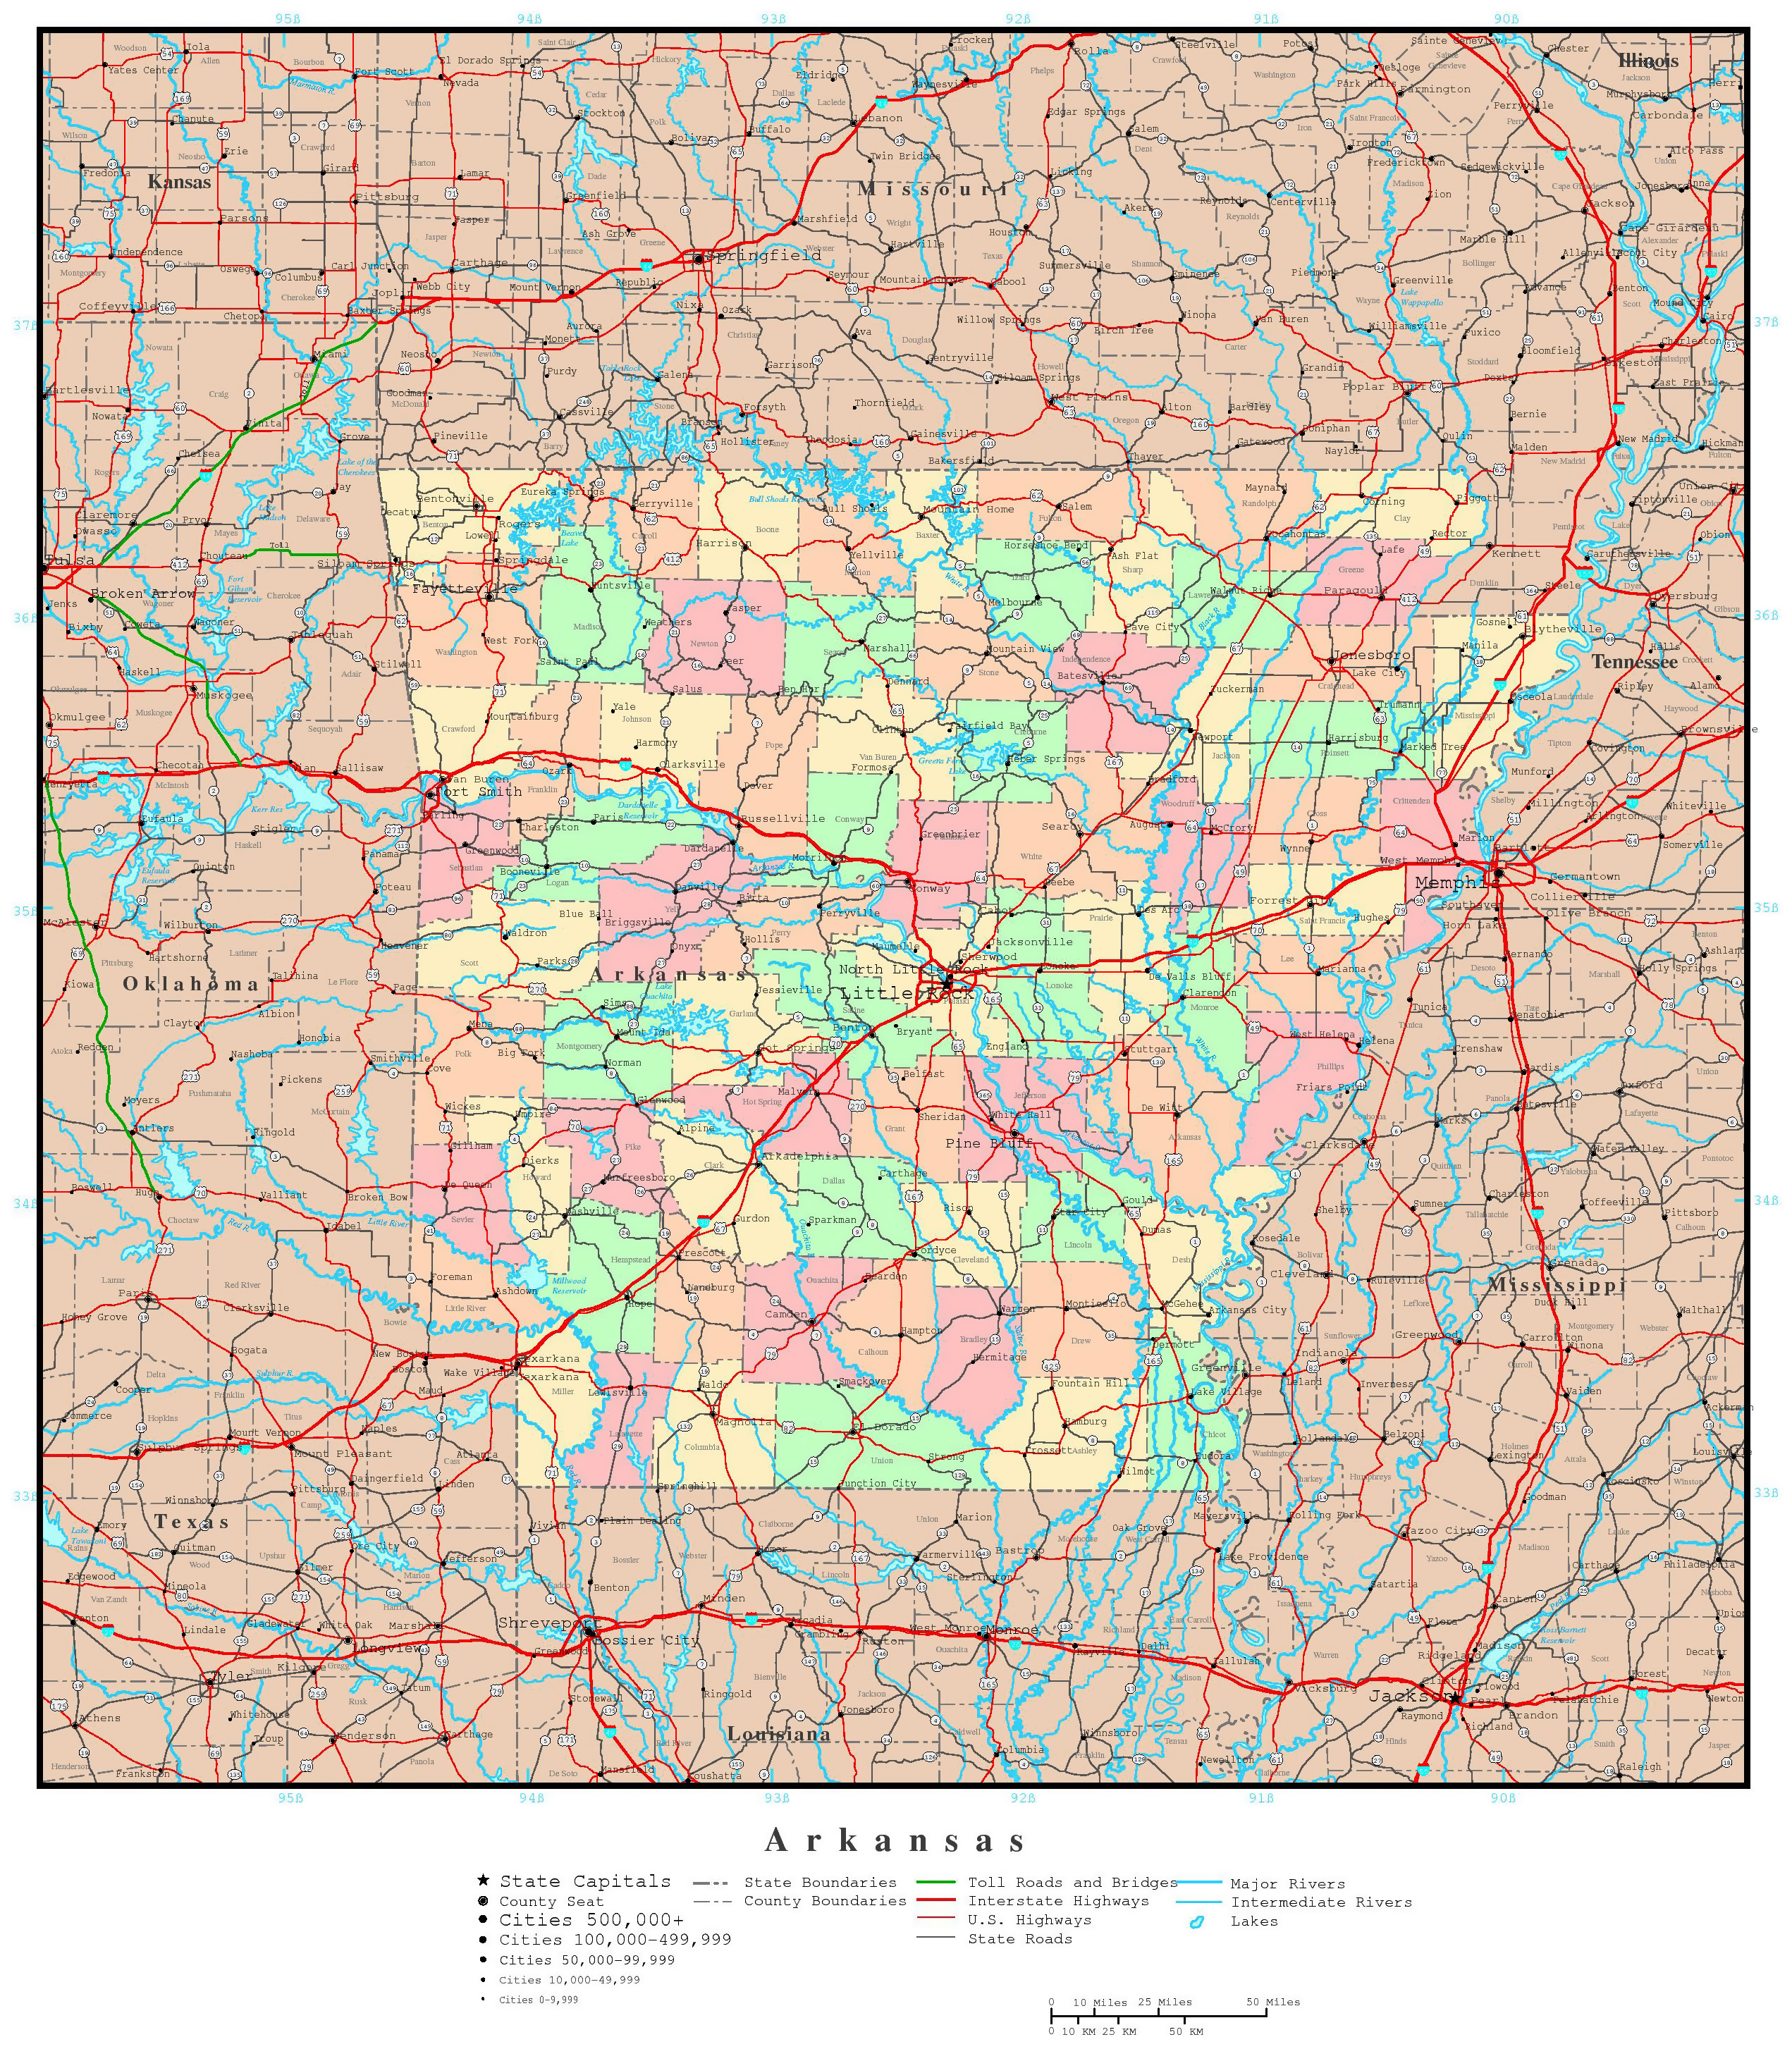 Large Detailed Administrative Map Of Arkansas State With Roads - Usa map with cities and states detailed